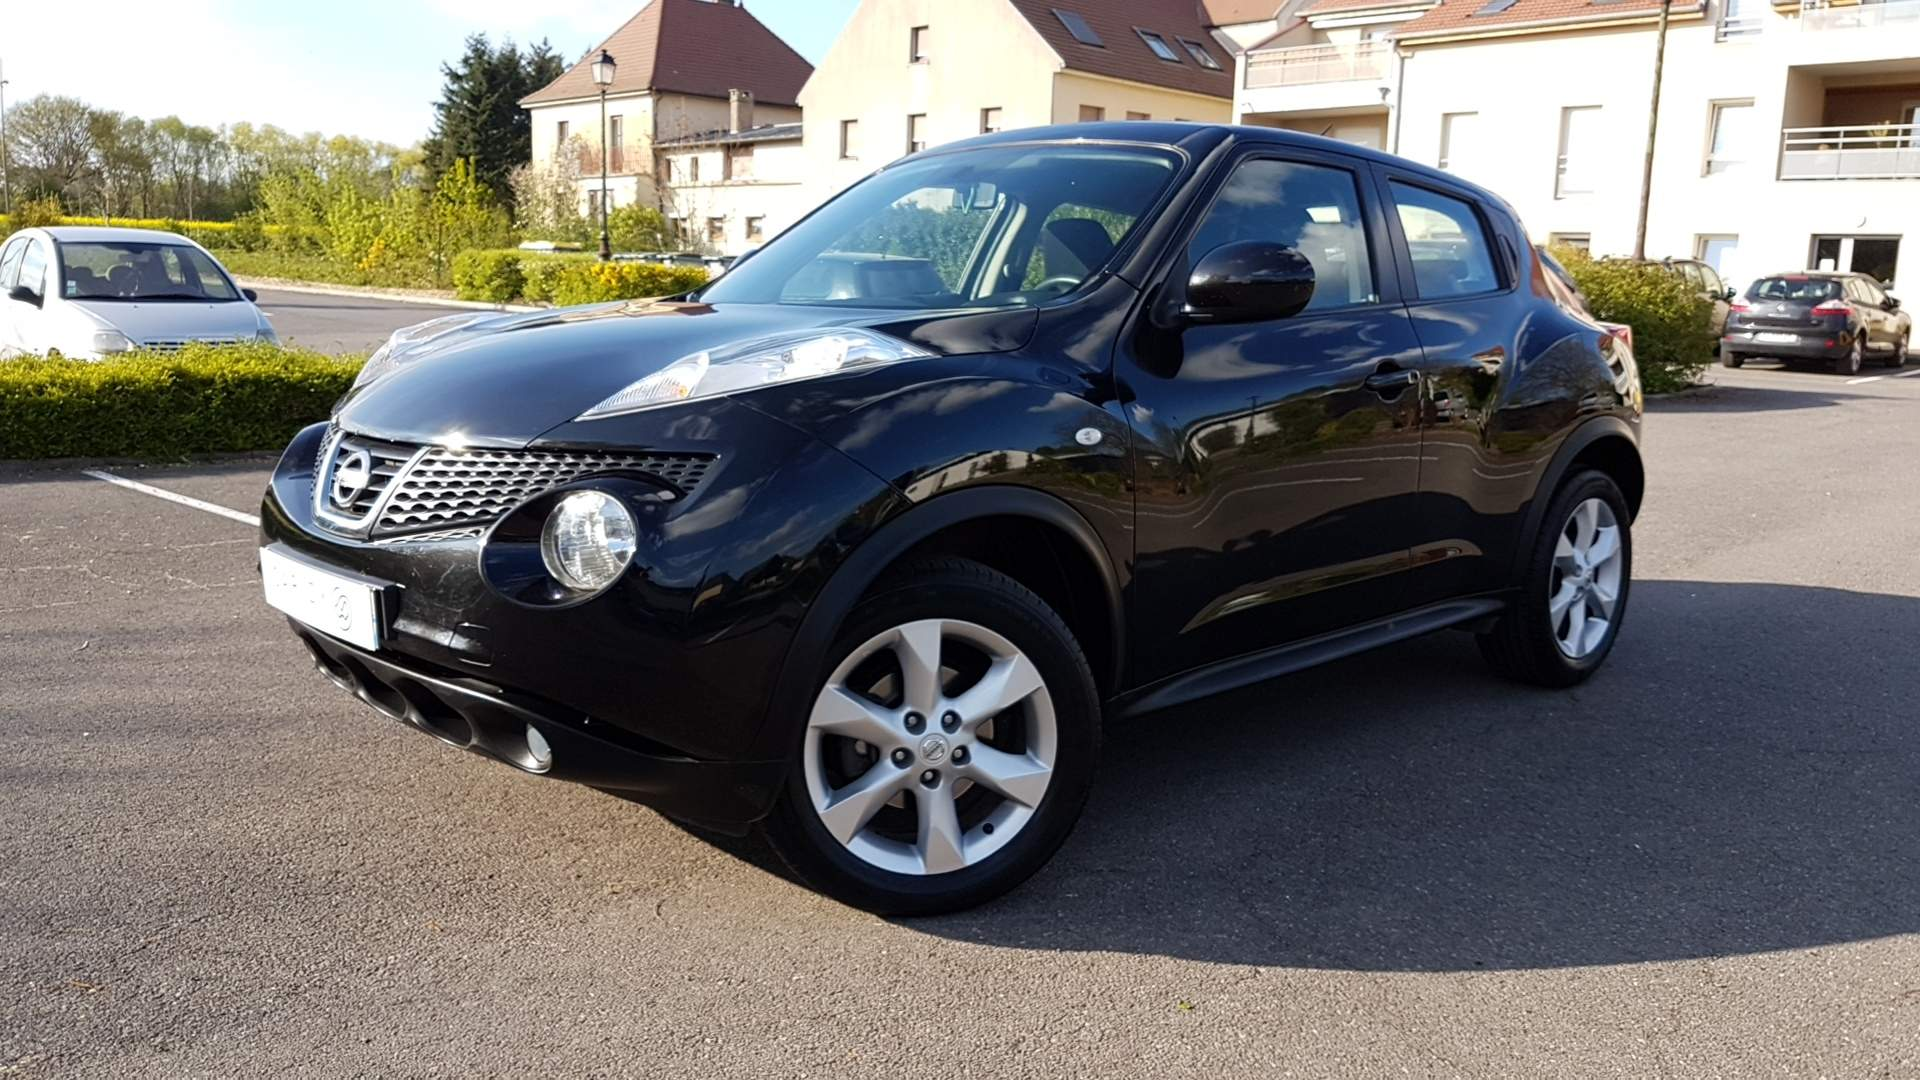 voiture nissan juke 1 5 dci 110 acenta 2wd occasion diesel 2012 78700 km 10100 paris. Black Bedroom Furniture Sets. Home Design Ideas